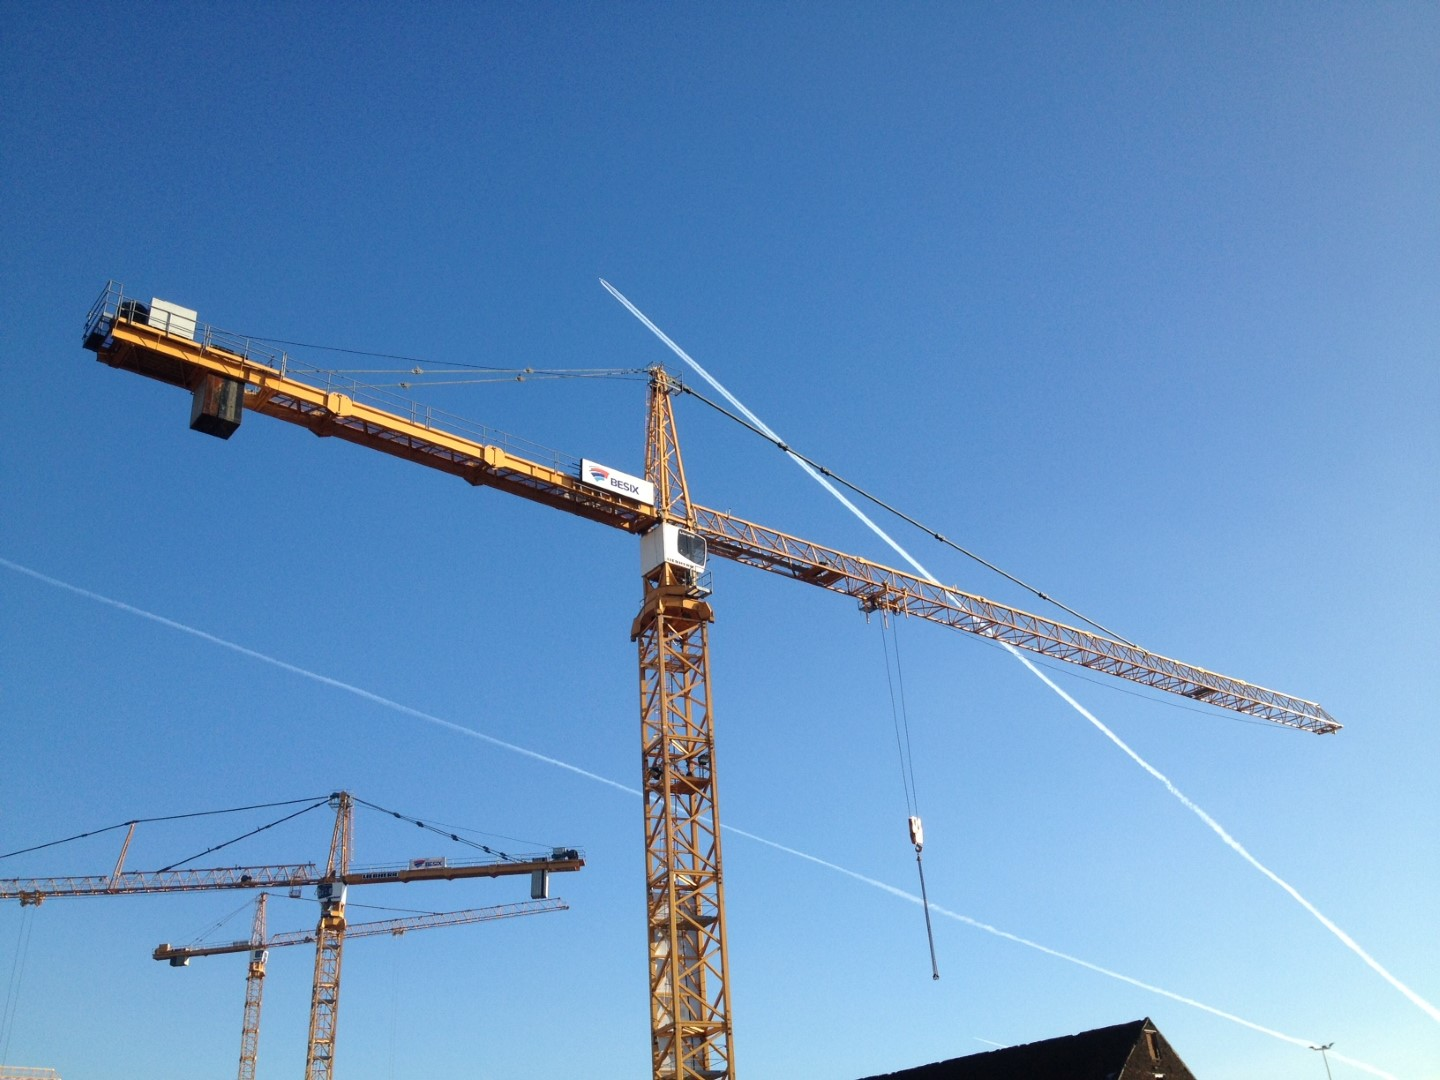 Second-hand Liebherr 420 EC-H 16 Litronic for the company Benelmat at Limelette